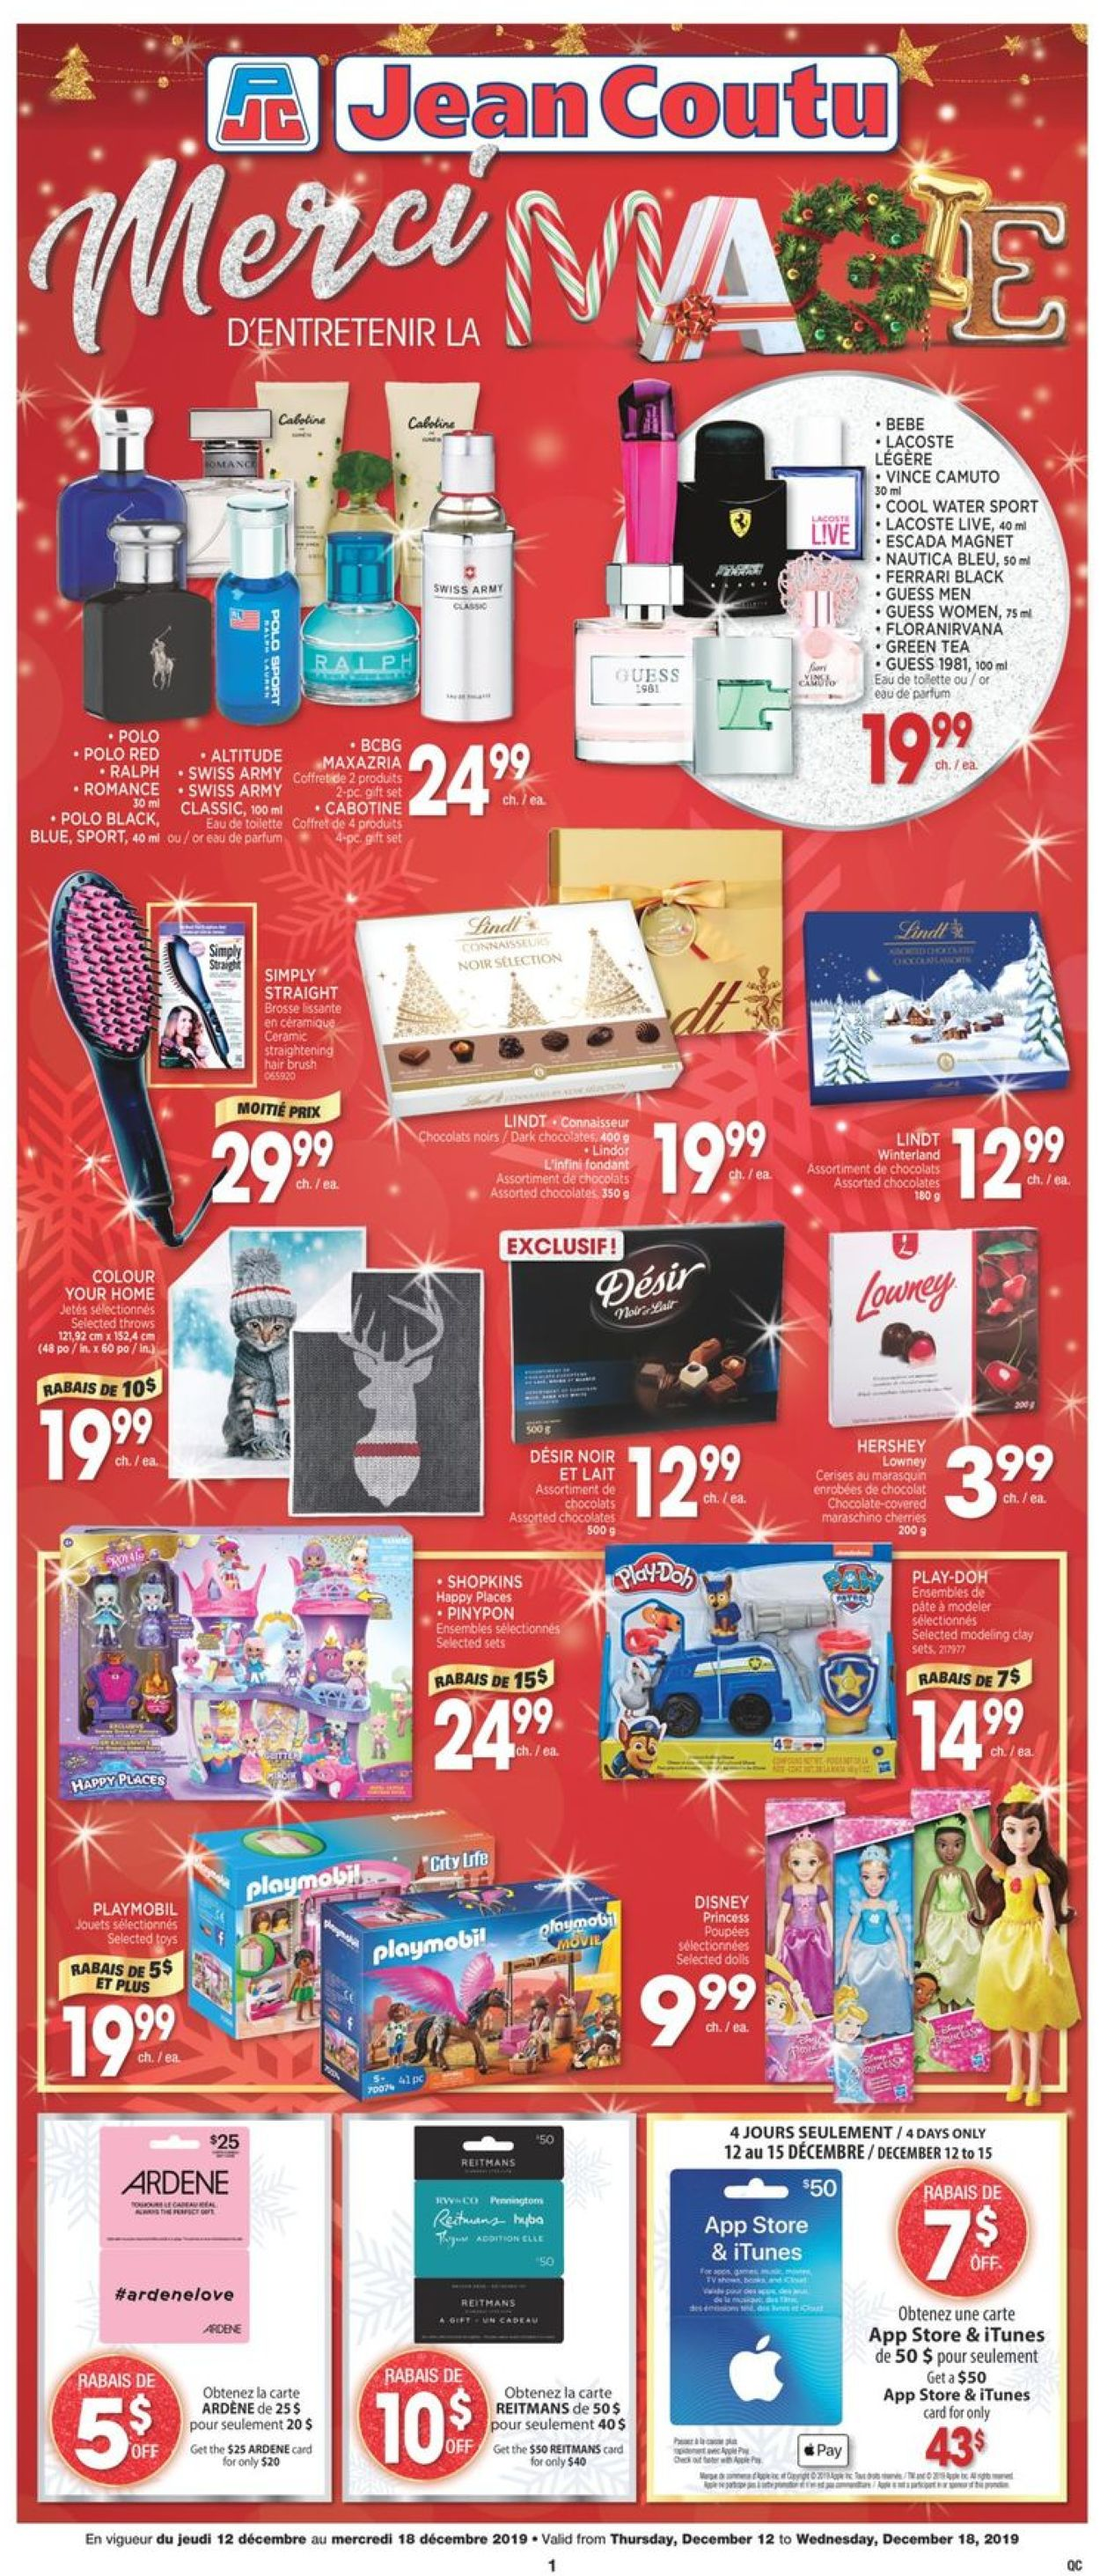 Jean Coutu Holiday Flyer 2019